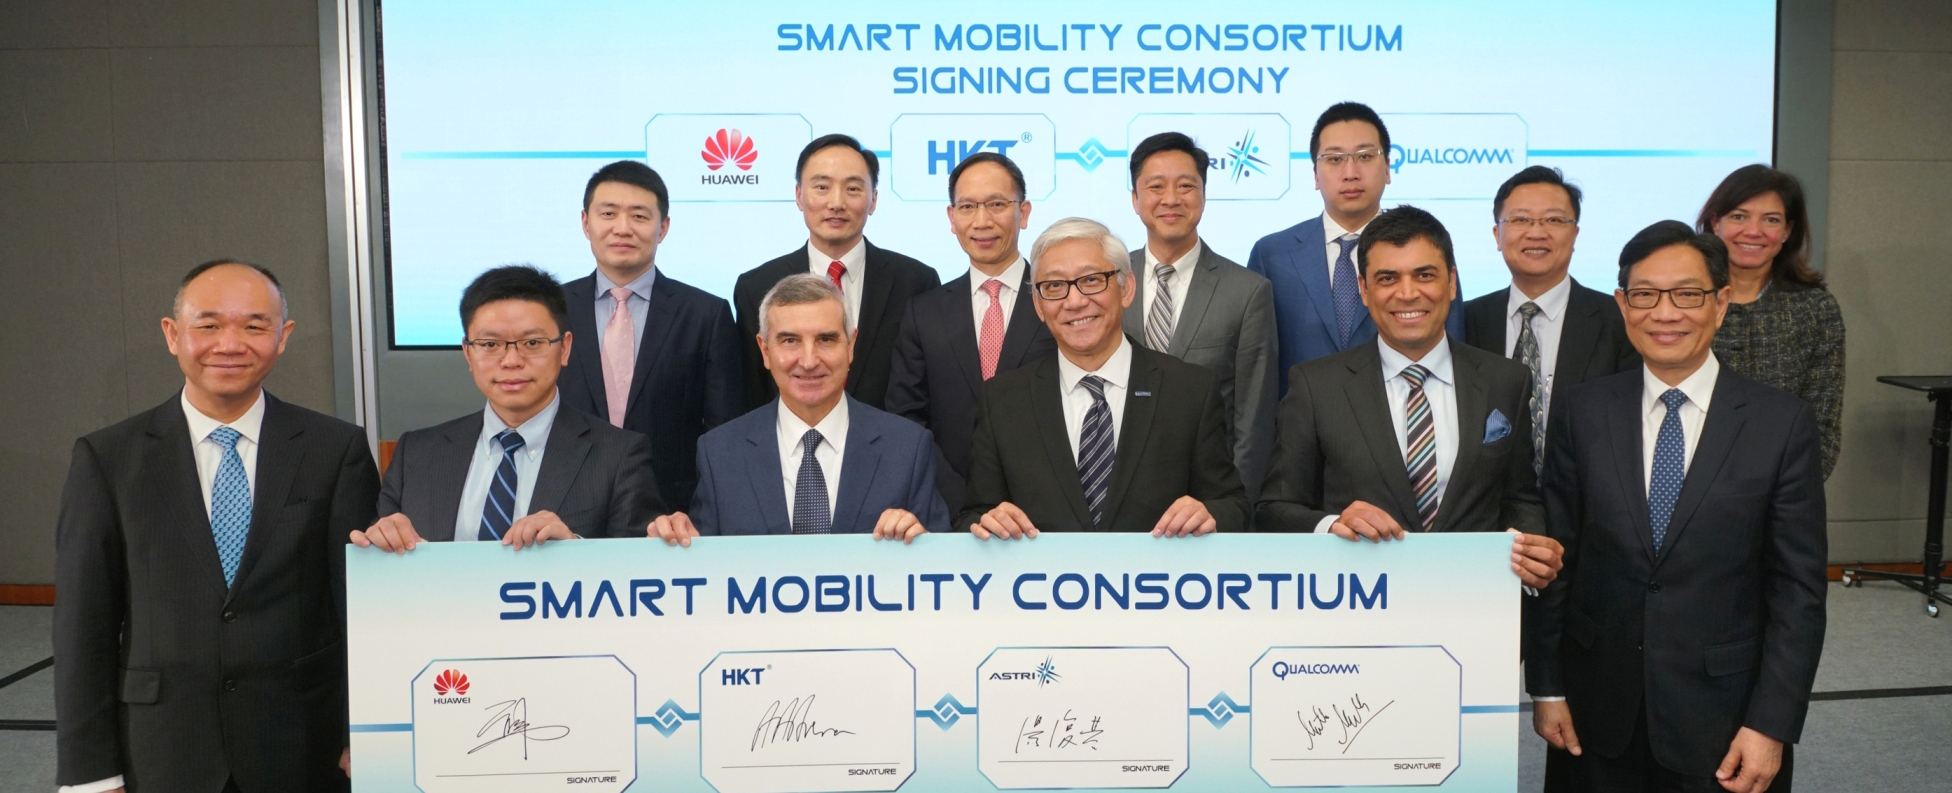 ASTRI, HKT, Huawei and Qualcomm Technologies work together to build a smart mobility system for Hong Kong using Cellular-V2X technologies